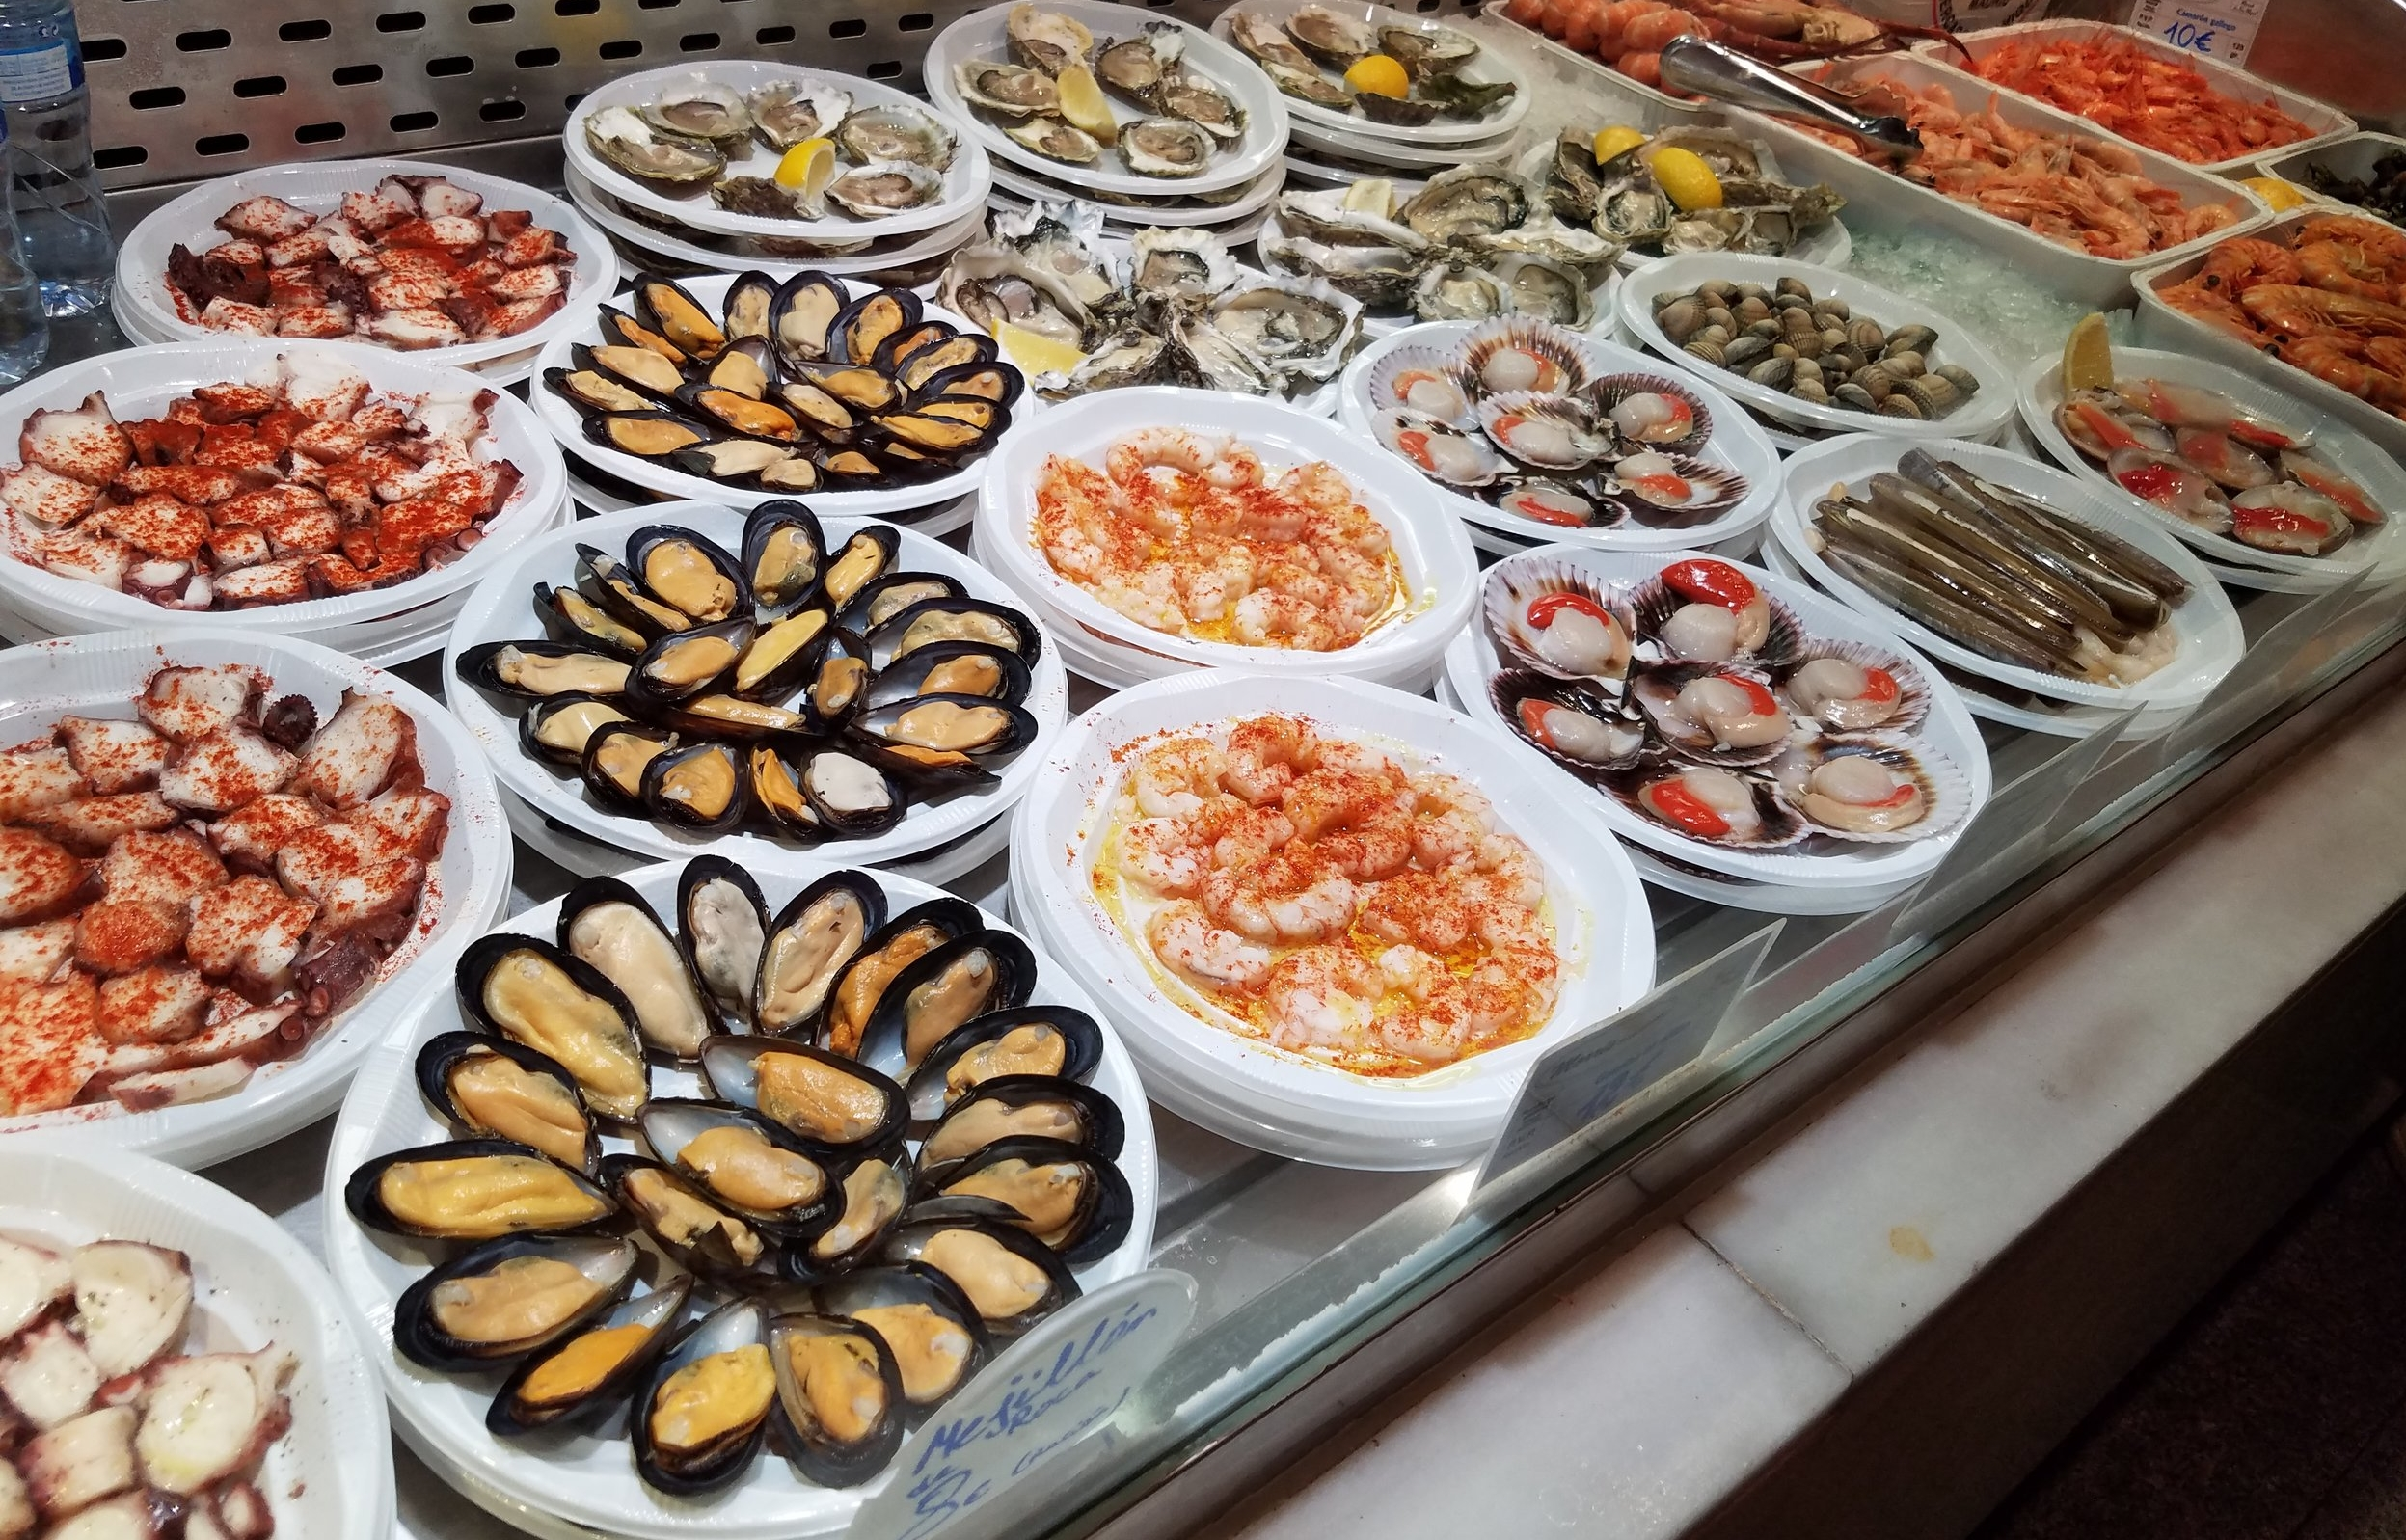 Seafood spread at Mercado de San Miguel